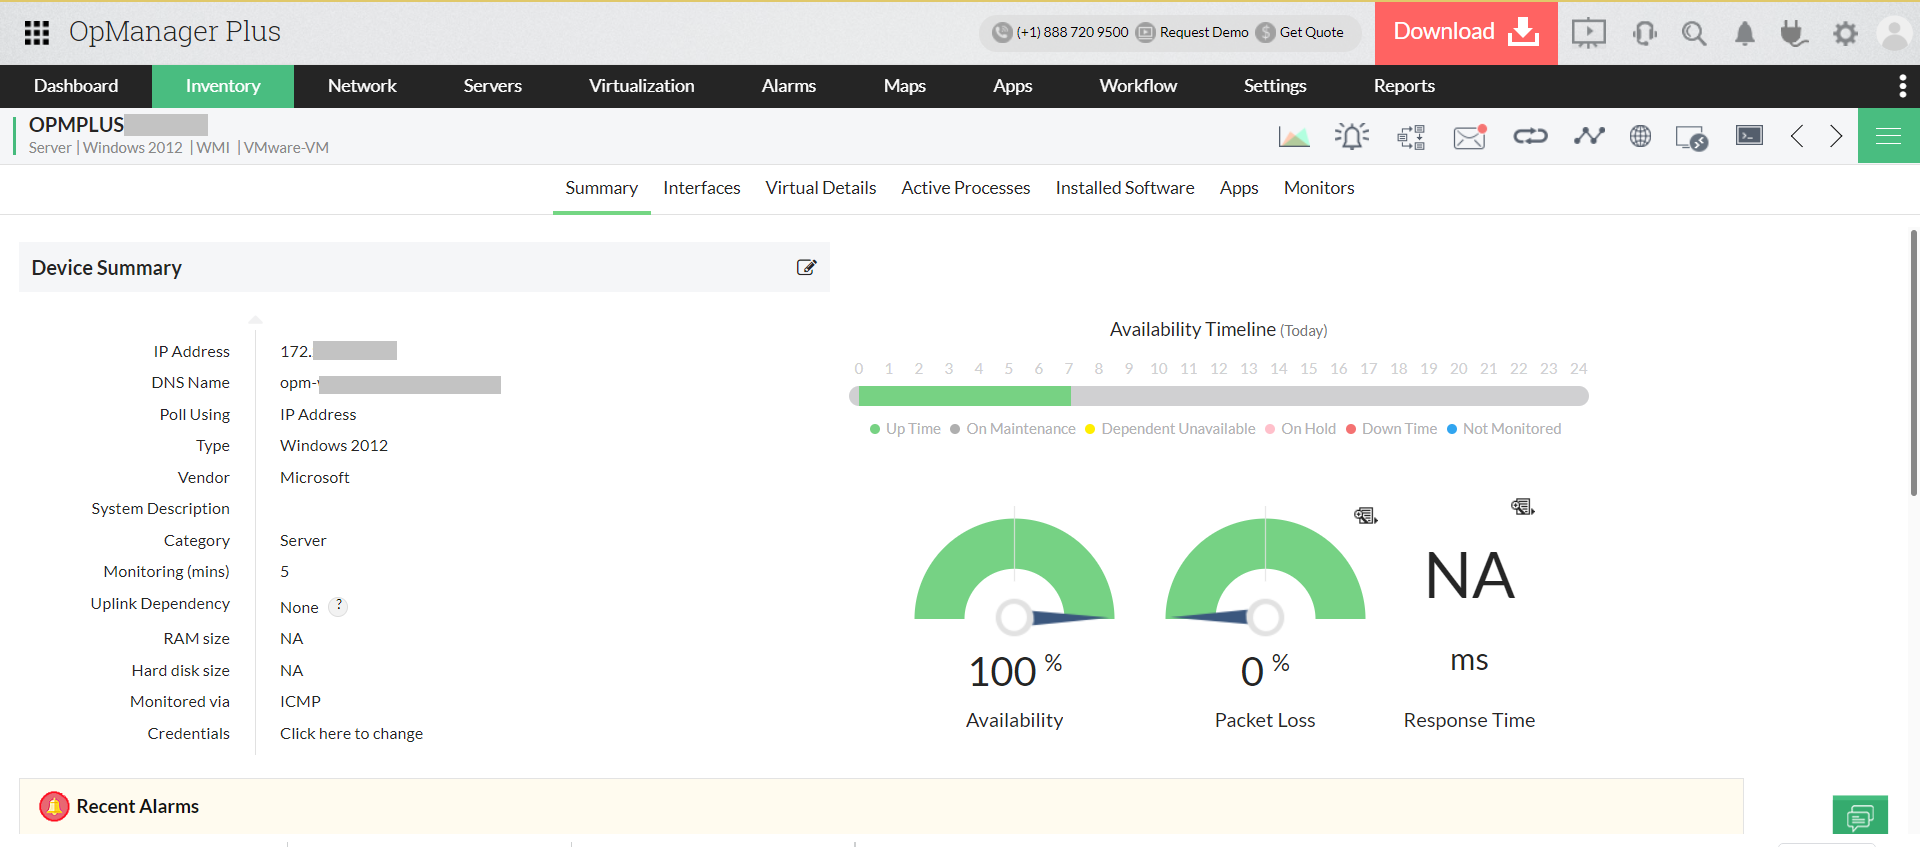 Enterprise Network Monitoring - ManageEngine OpManager Plus